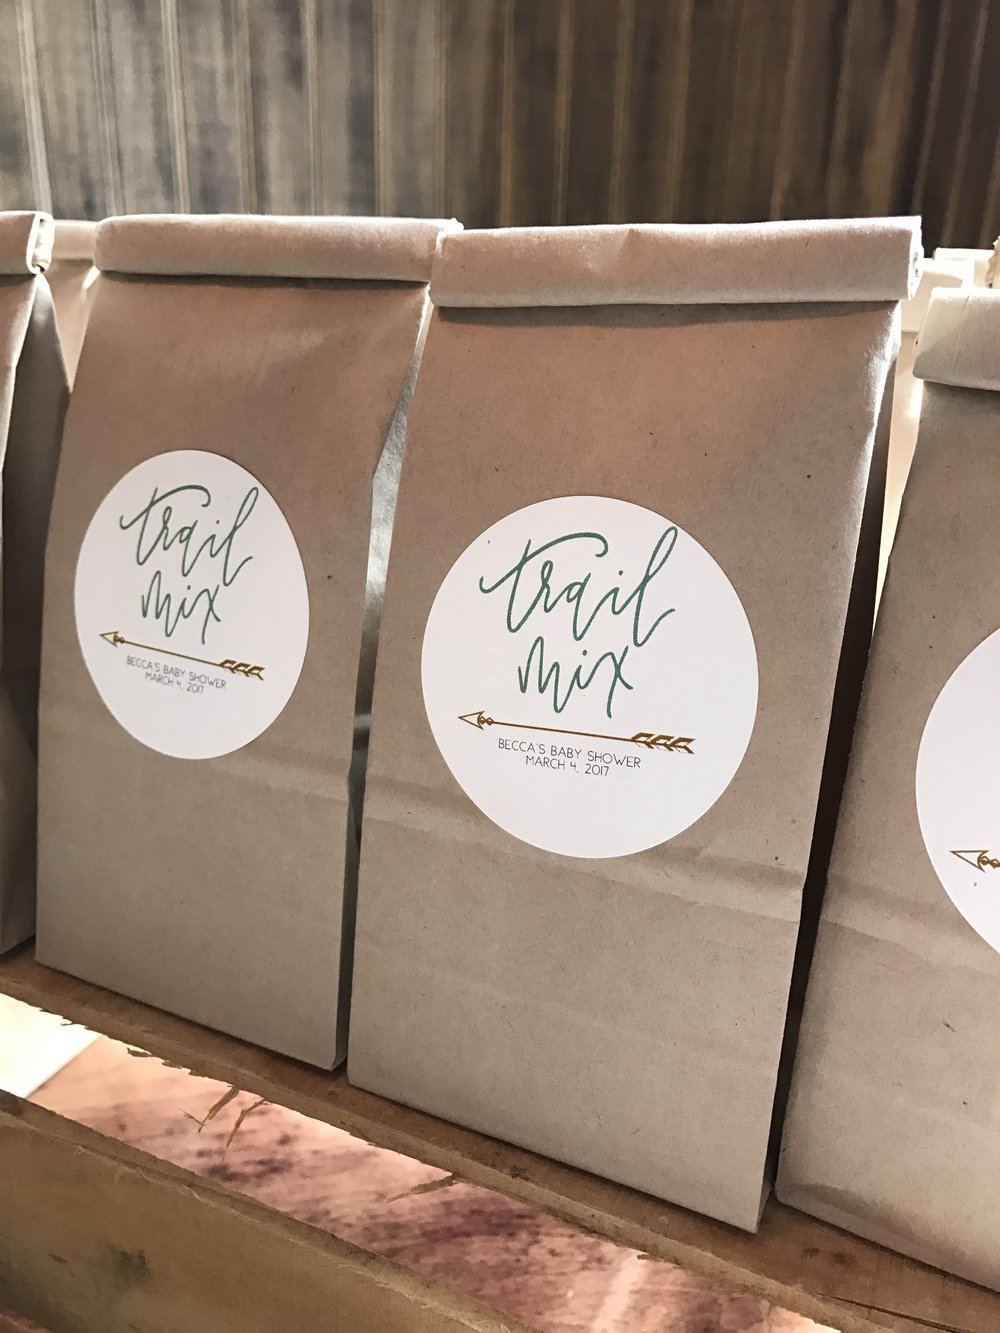 Trail mix favor bags for the road! - Using Avery Labels, I hand-lettered the design to create a look reminiscient of the invitation.